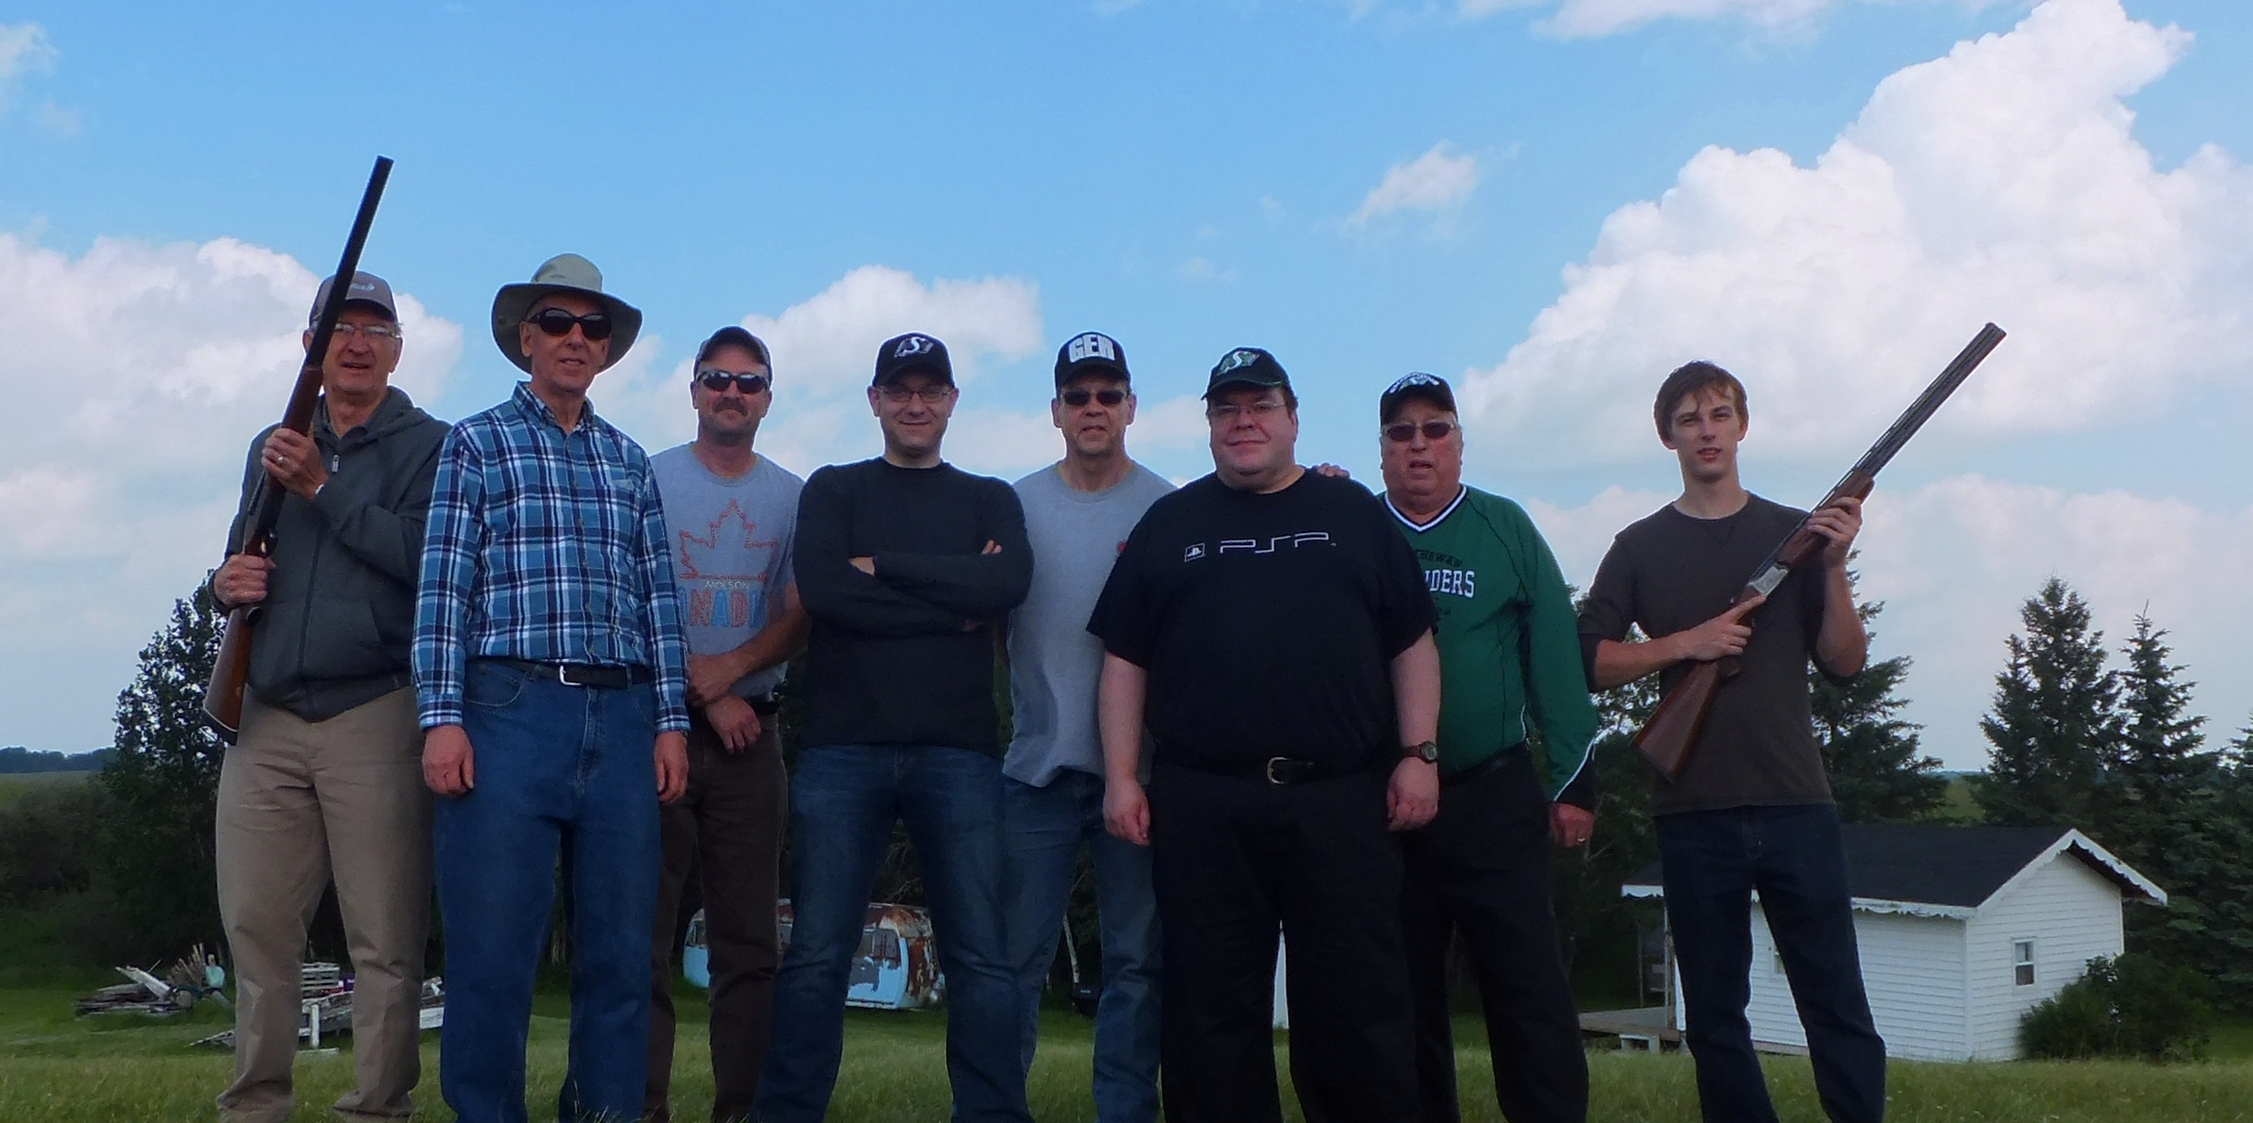 Video From The Mount Olive Men's Trap Shooting Event - July 12th 2014 - Image 1